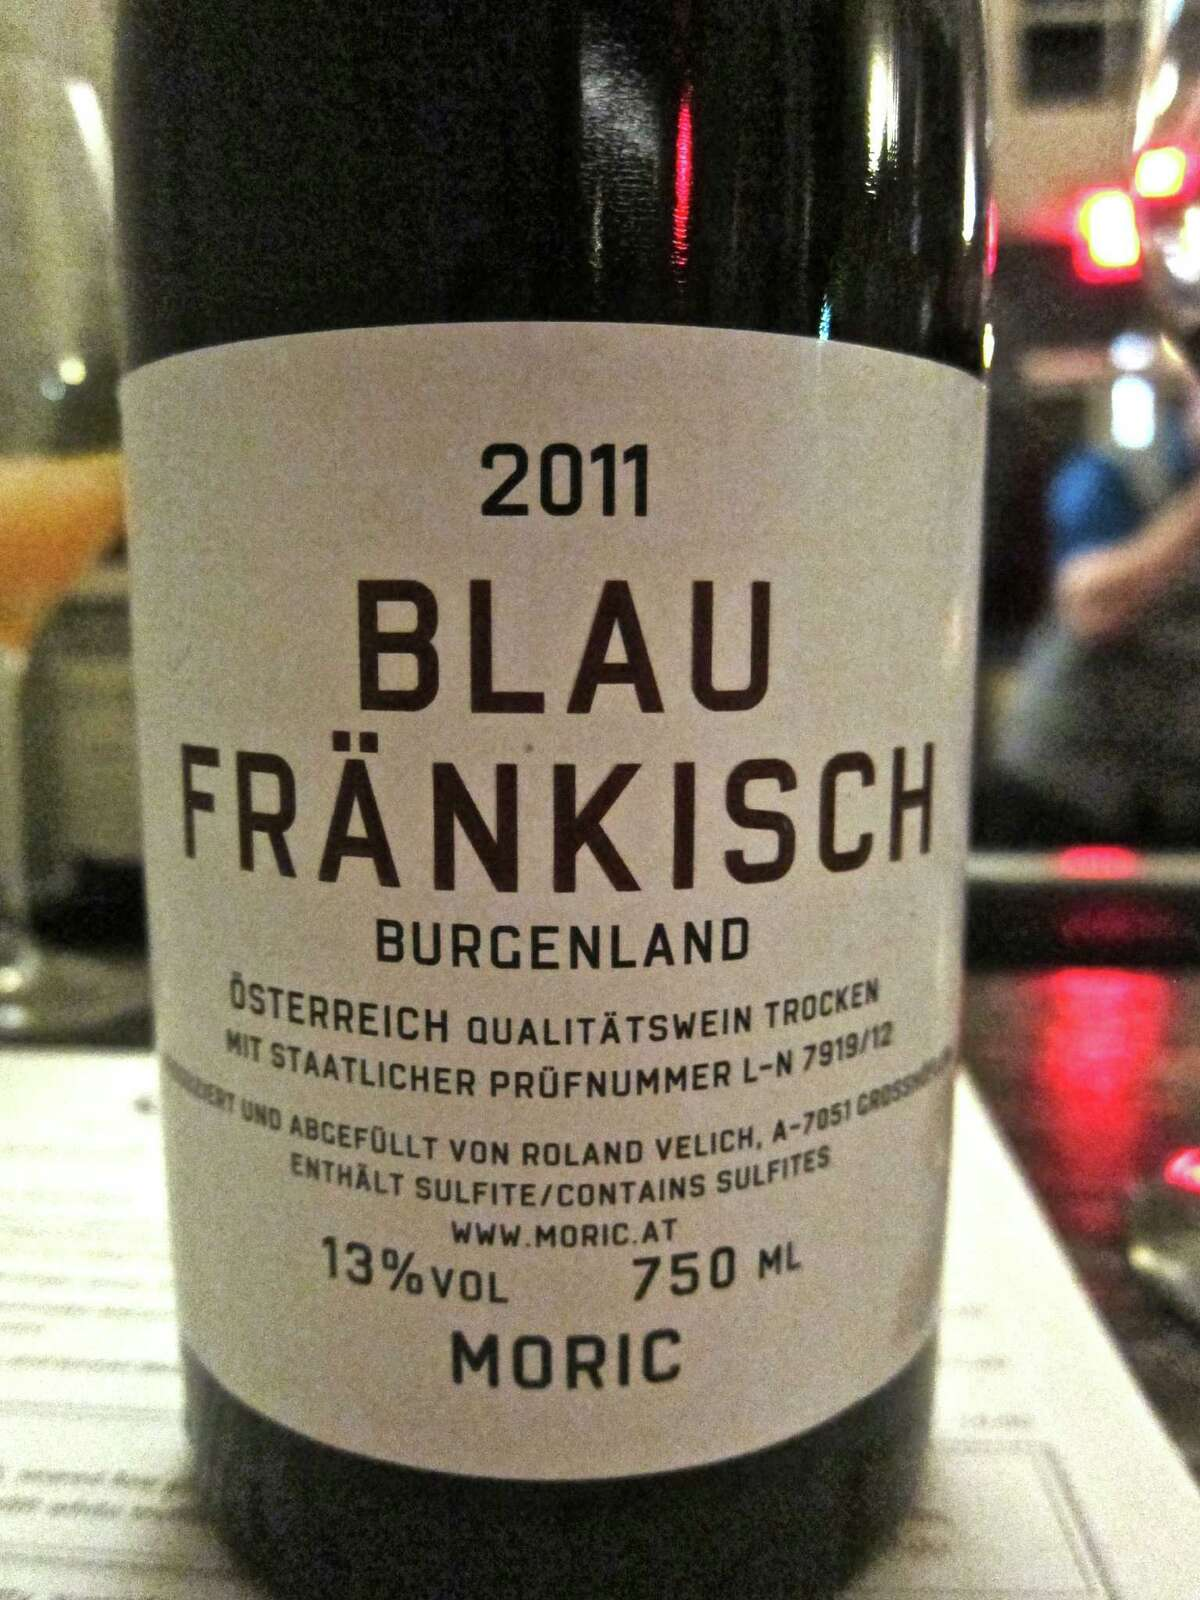 Moric Blaufré¤nkisch is an Austrian red wine that suits the Tejas Chili at 60 Degrees Mastercrafted.